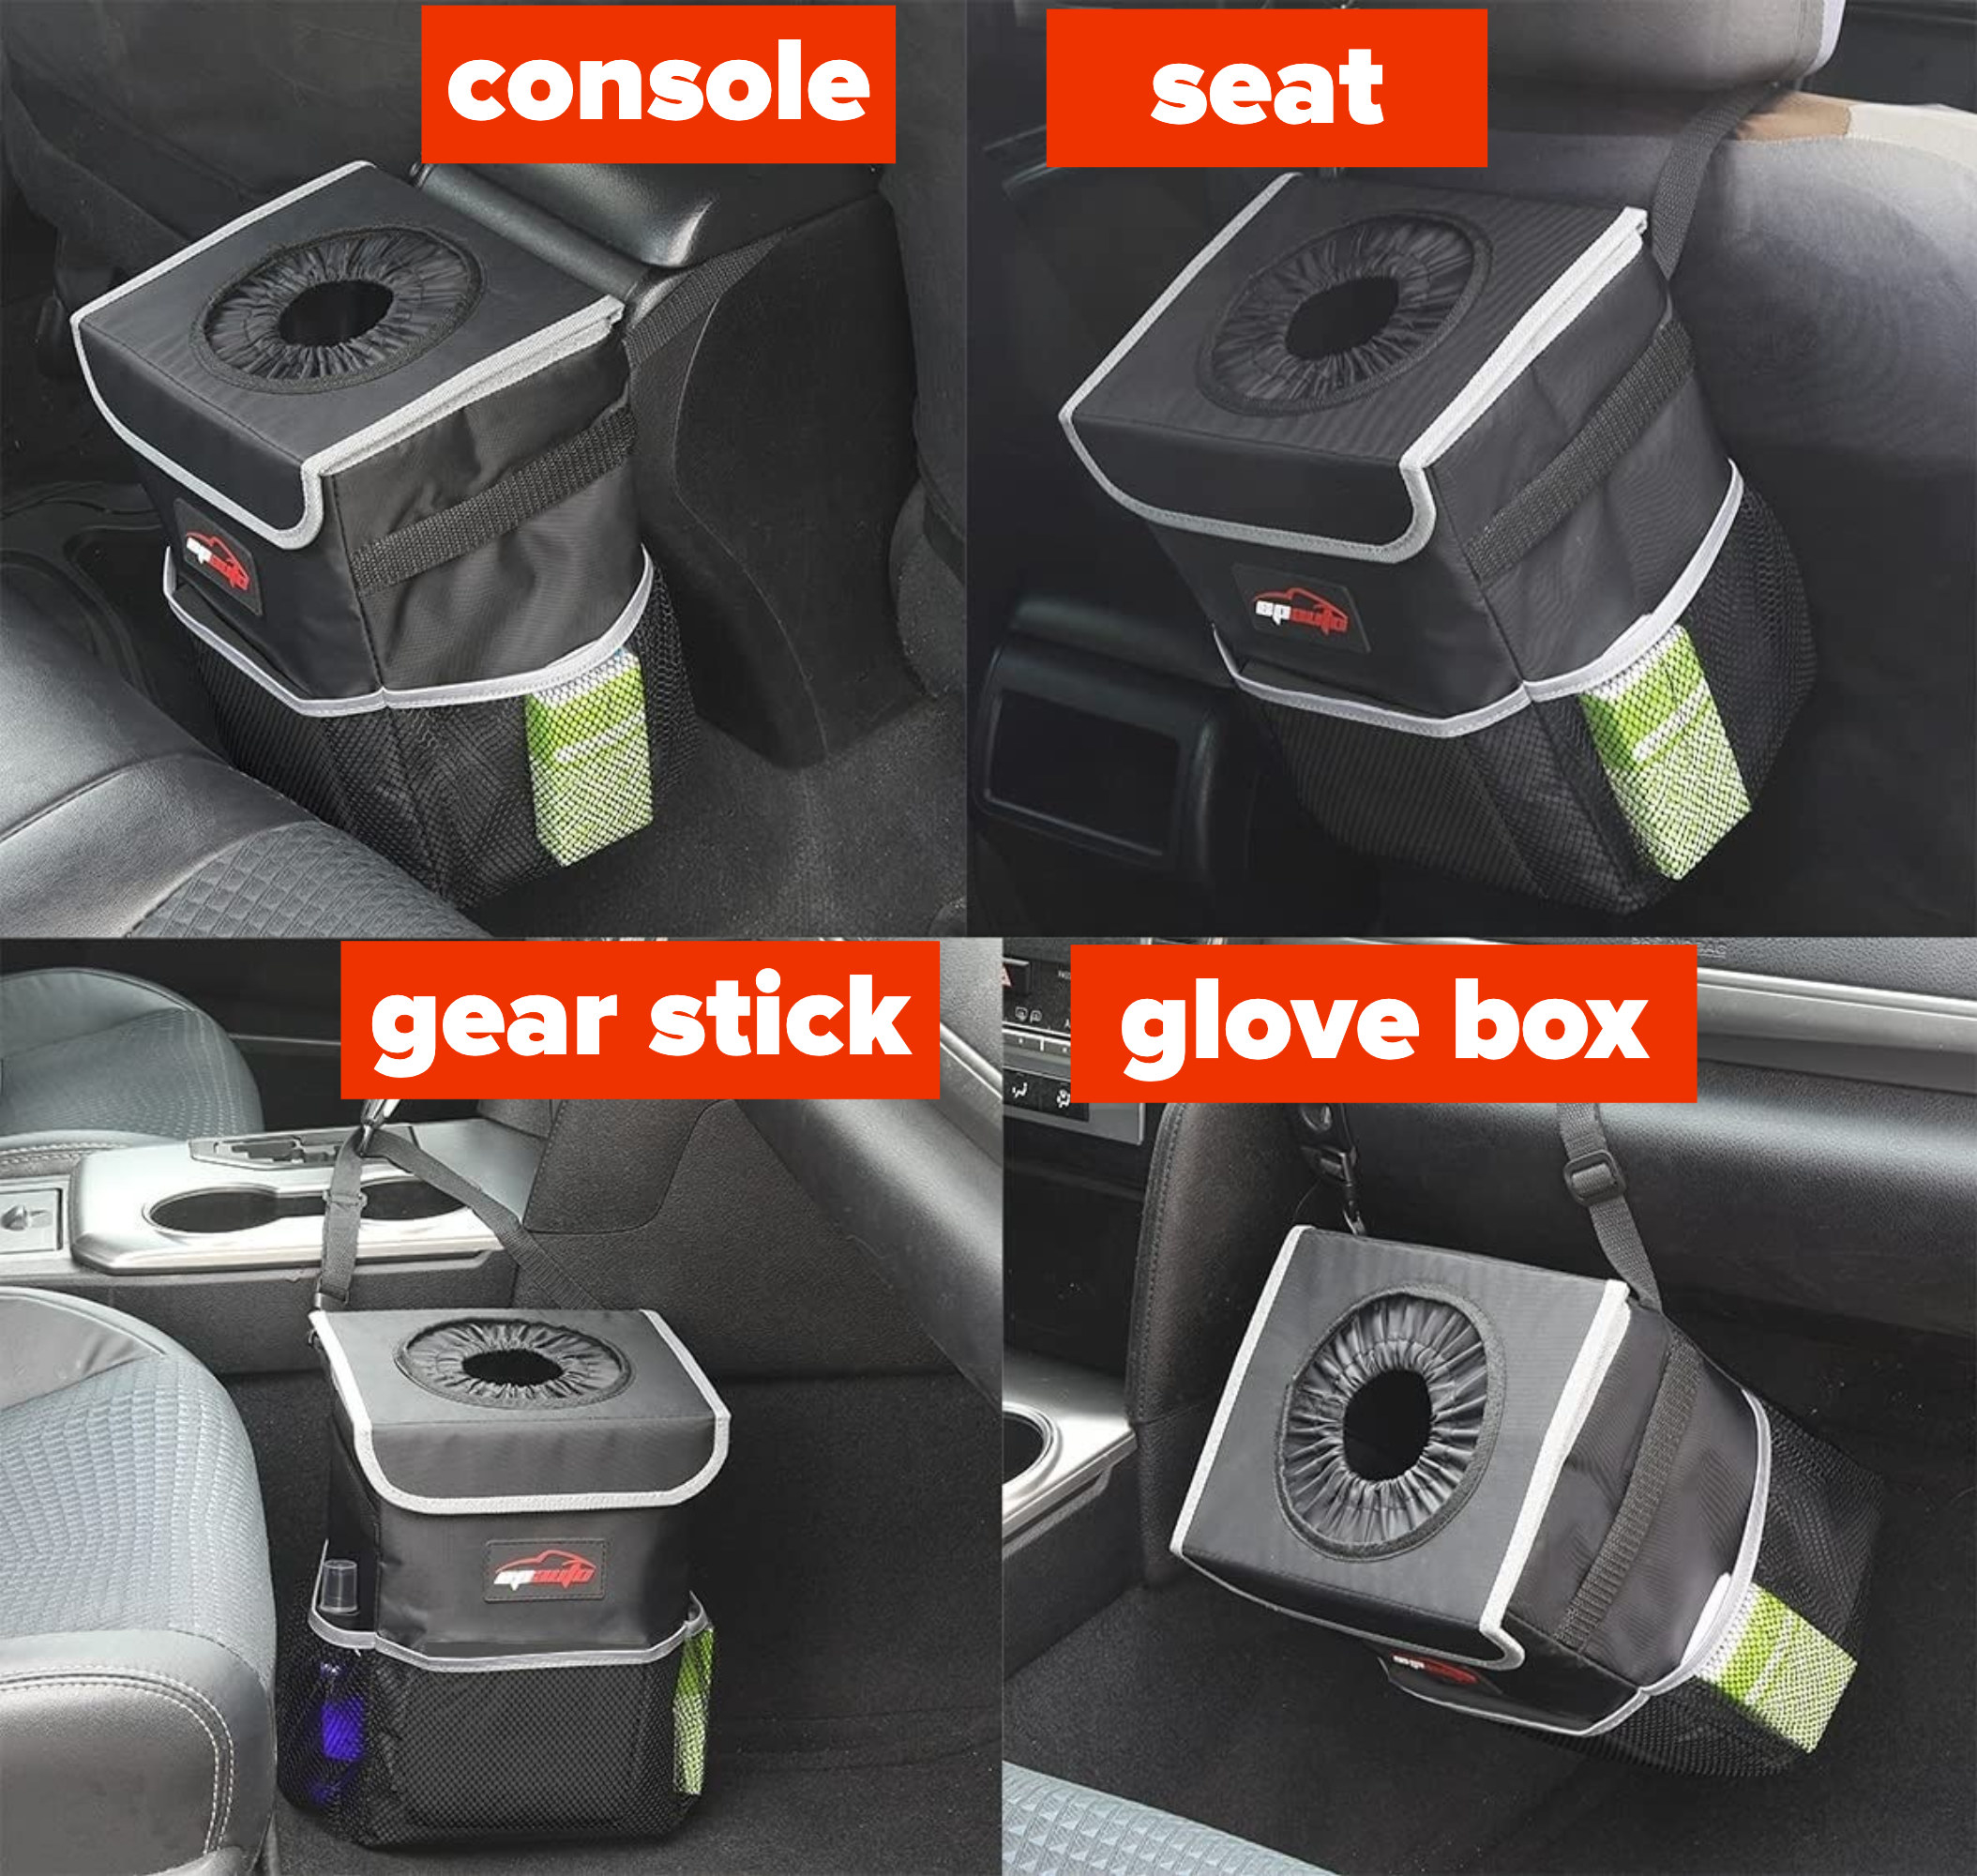 four images of the trash can hanging off of the console, seat, gear stick, and glove box